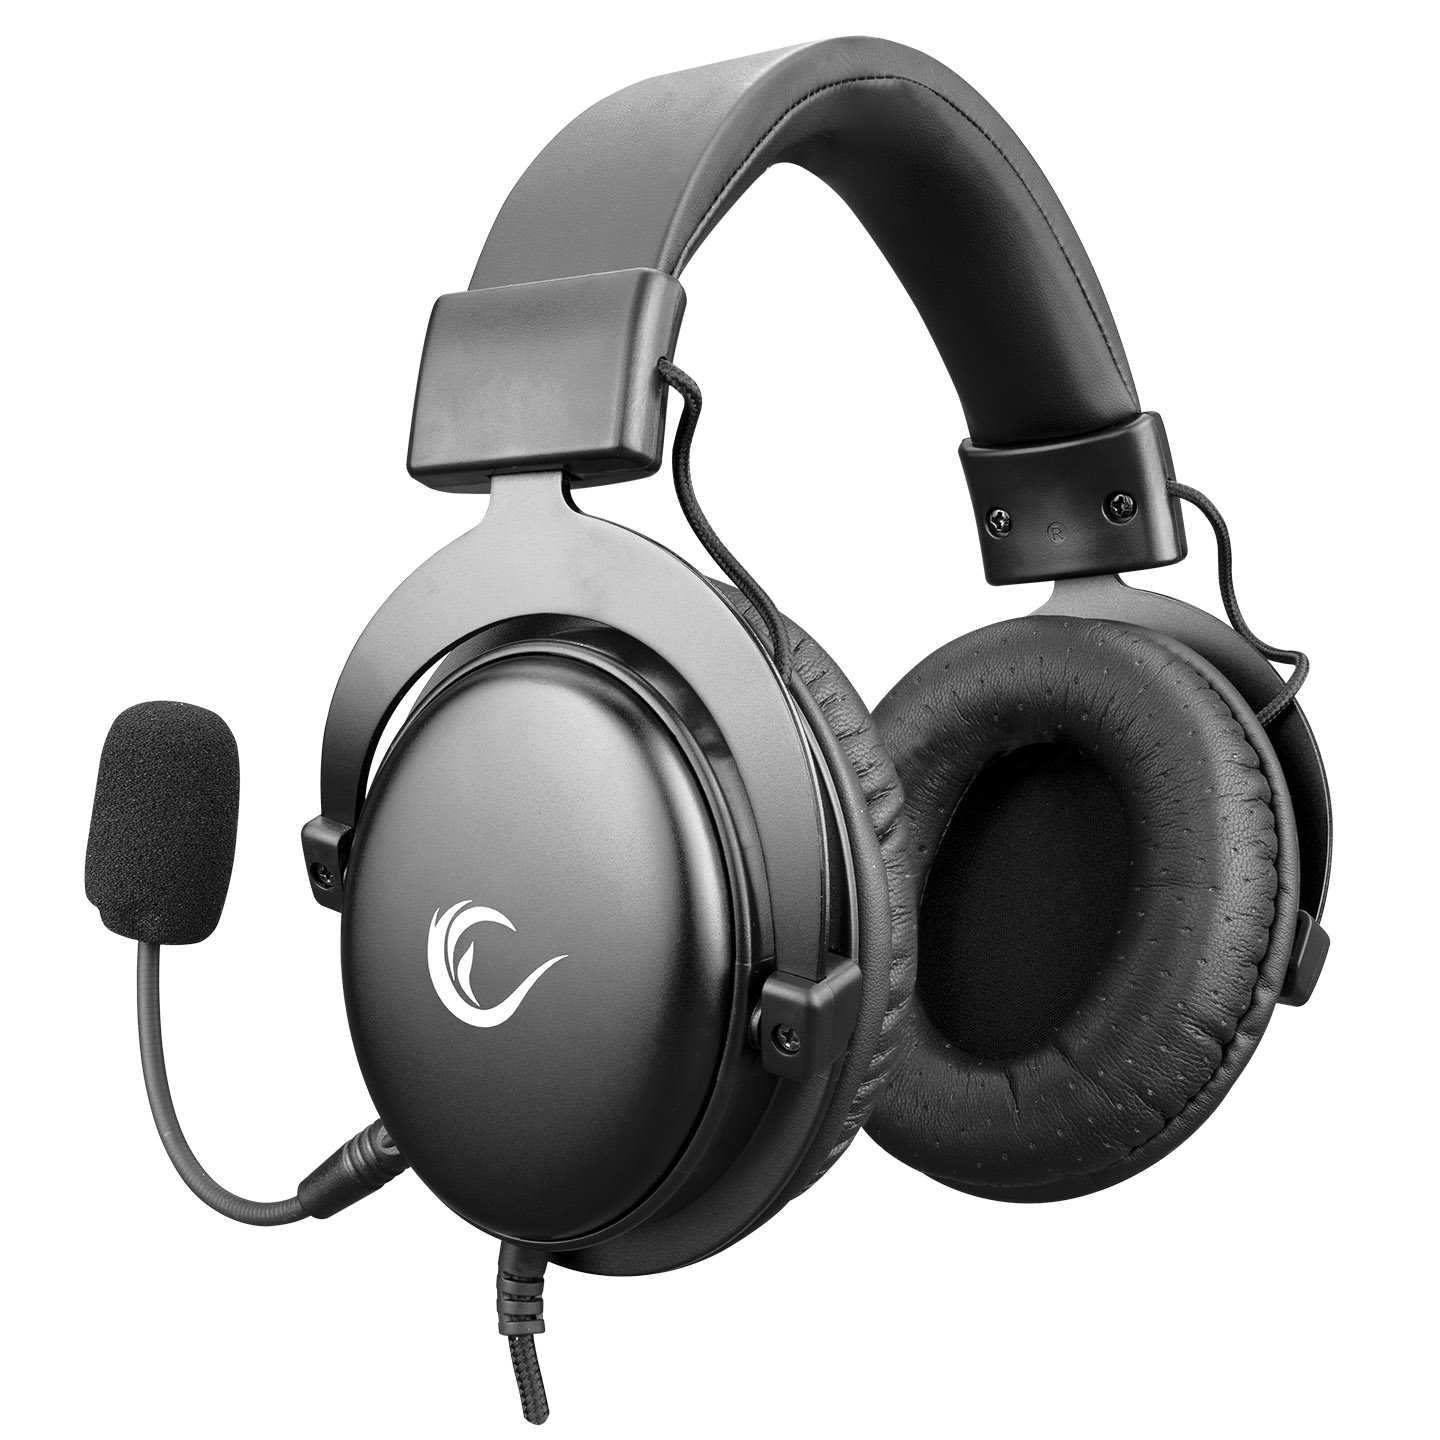 Rampage R36 DROP Black 7.1 Usb Surround Gaming Headset with Microphone